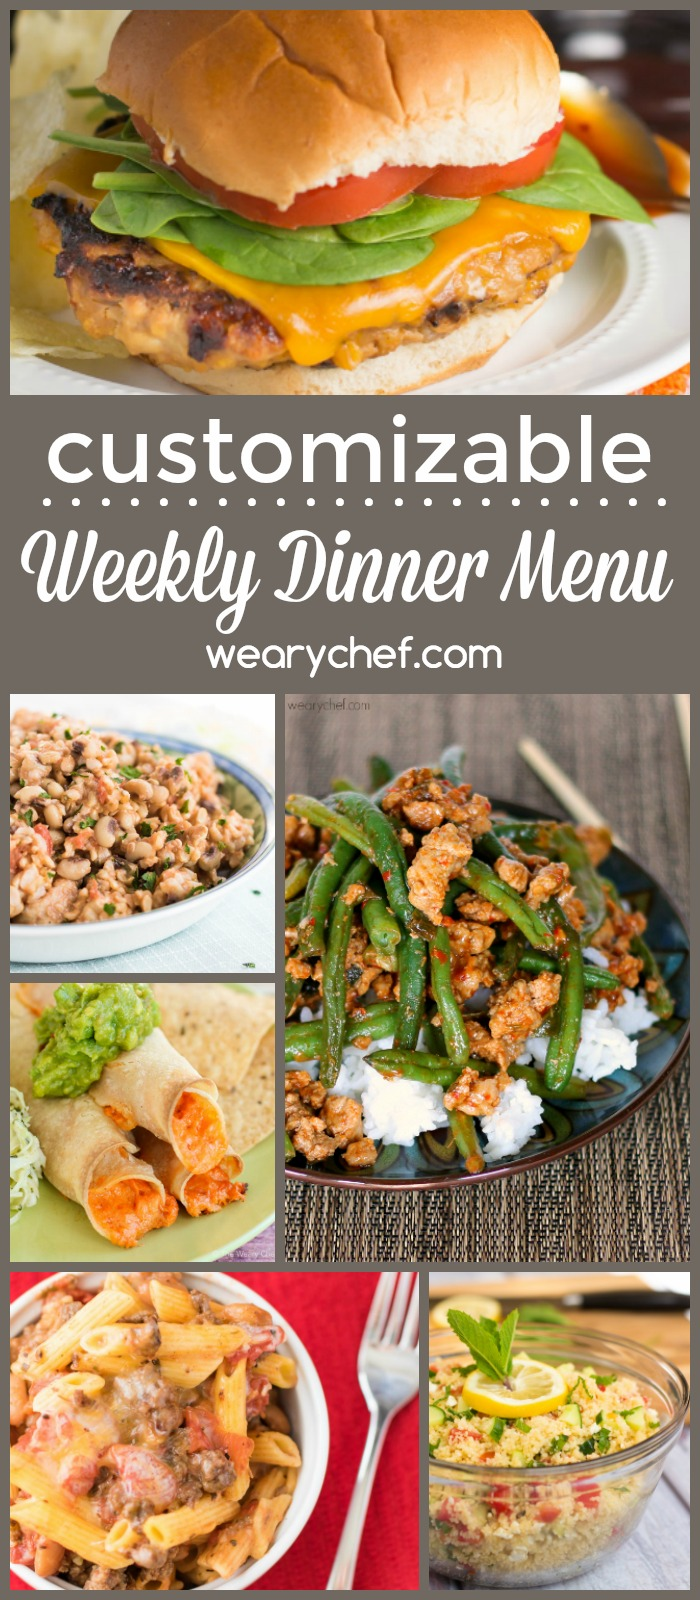 Get help with your weekly meal planning with this easy dinner menu! Customize the recipes and grocery list to make your life easier!